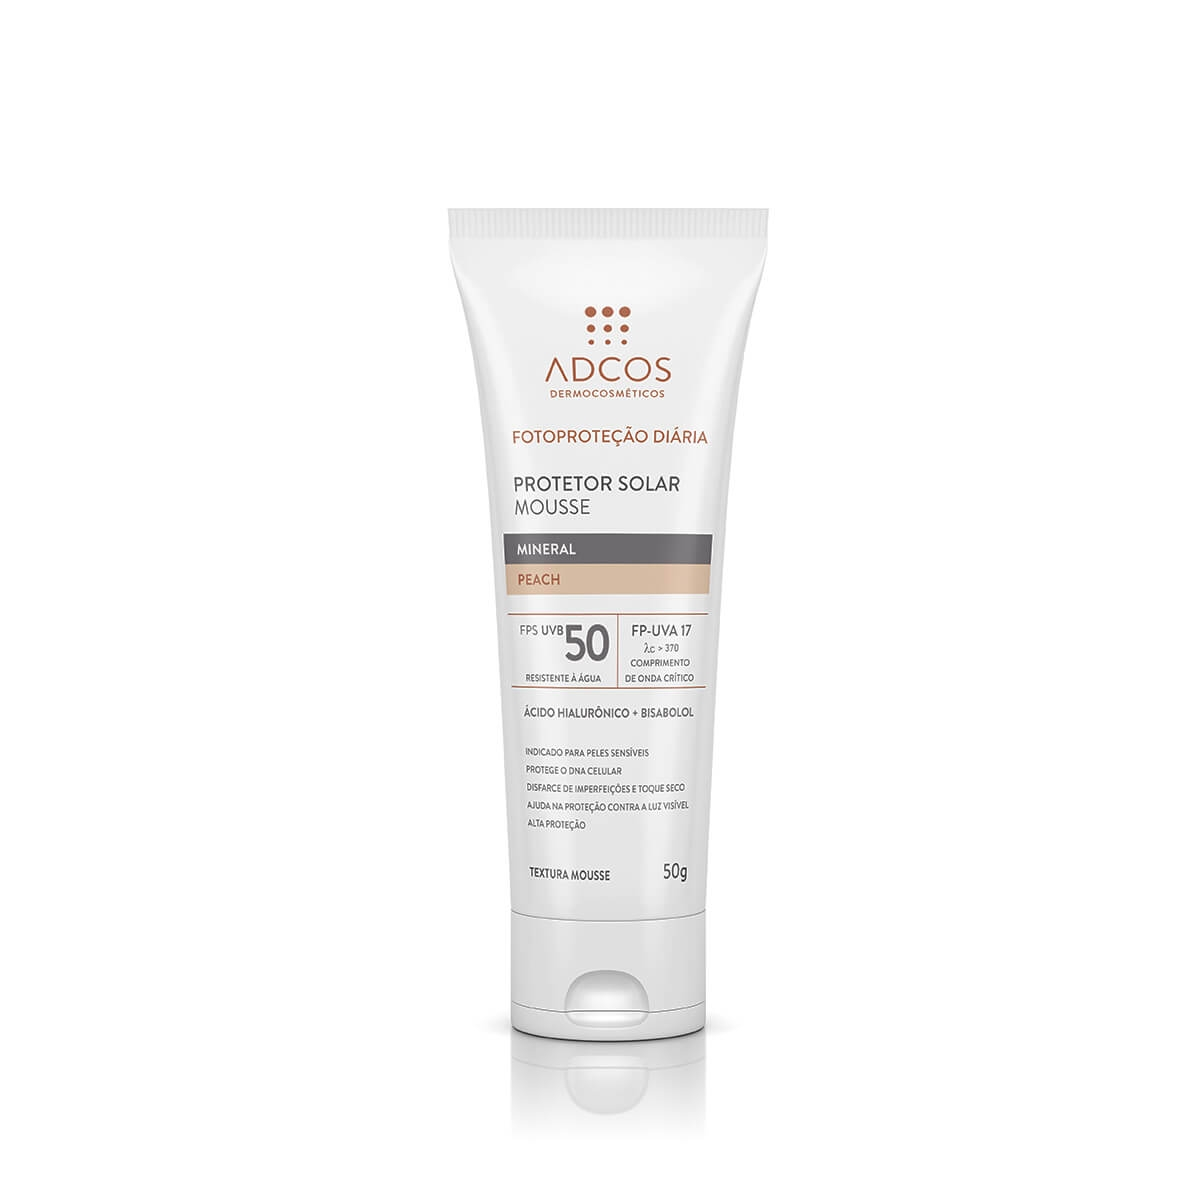 Protetor Solar Mousse Adcos Mineral Peach FPS50 50g